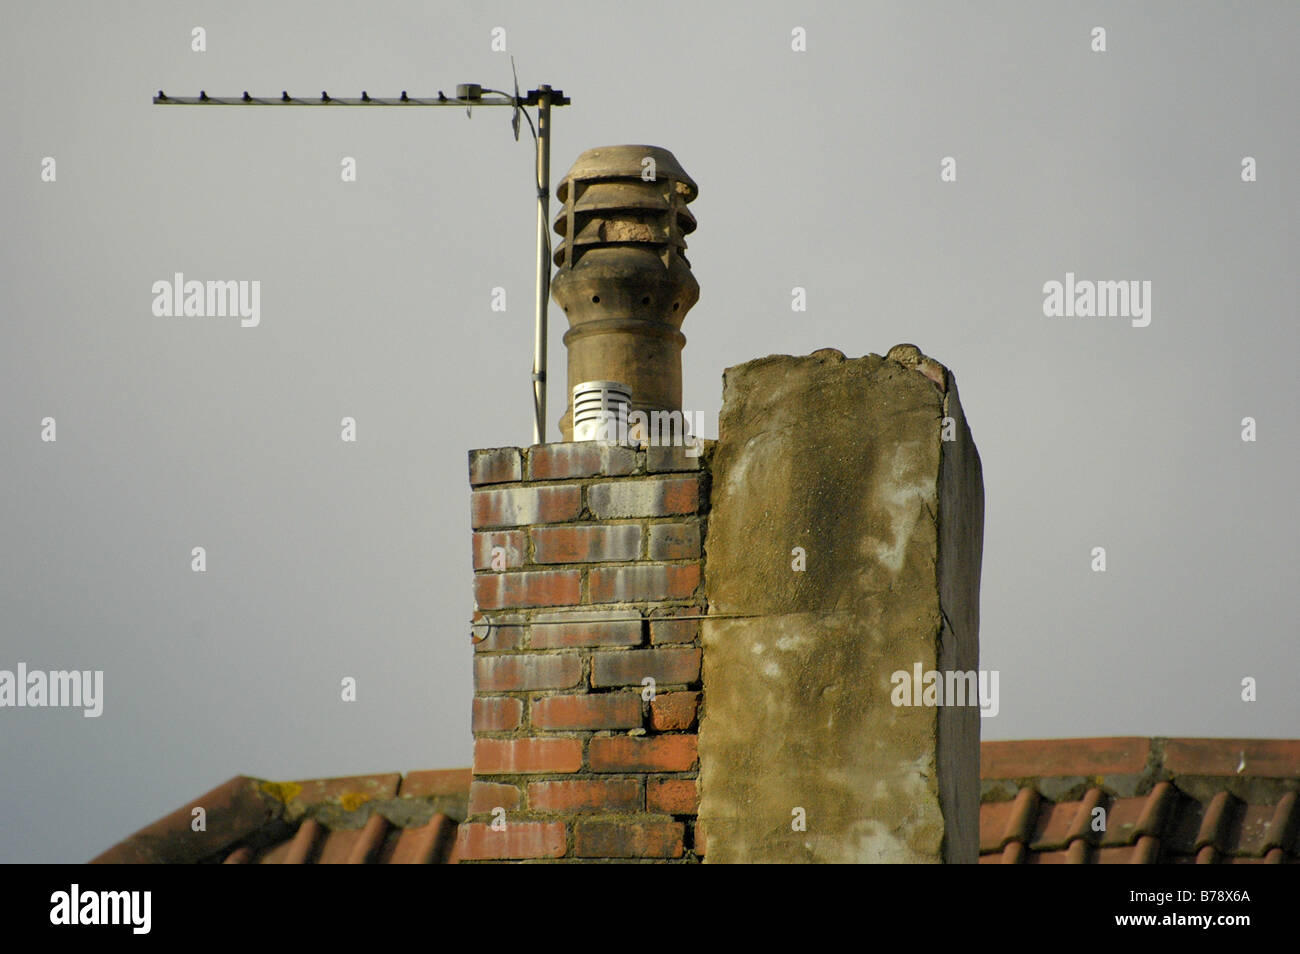 Decrepit looking chimney stack on a roof with an Ariel attached - Stock Image